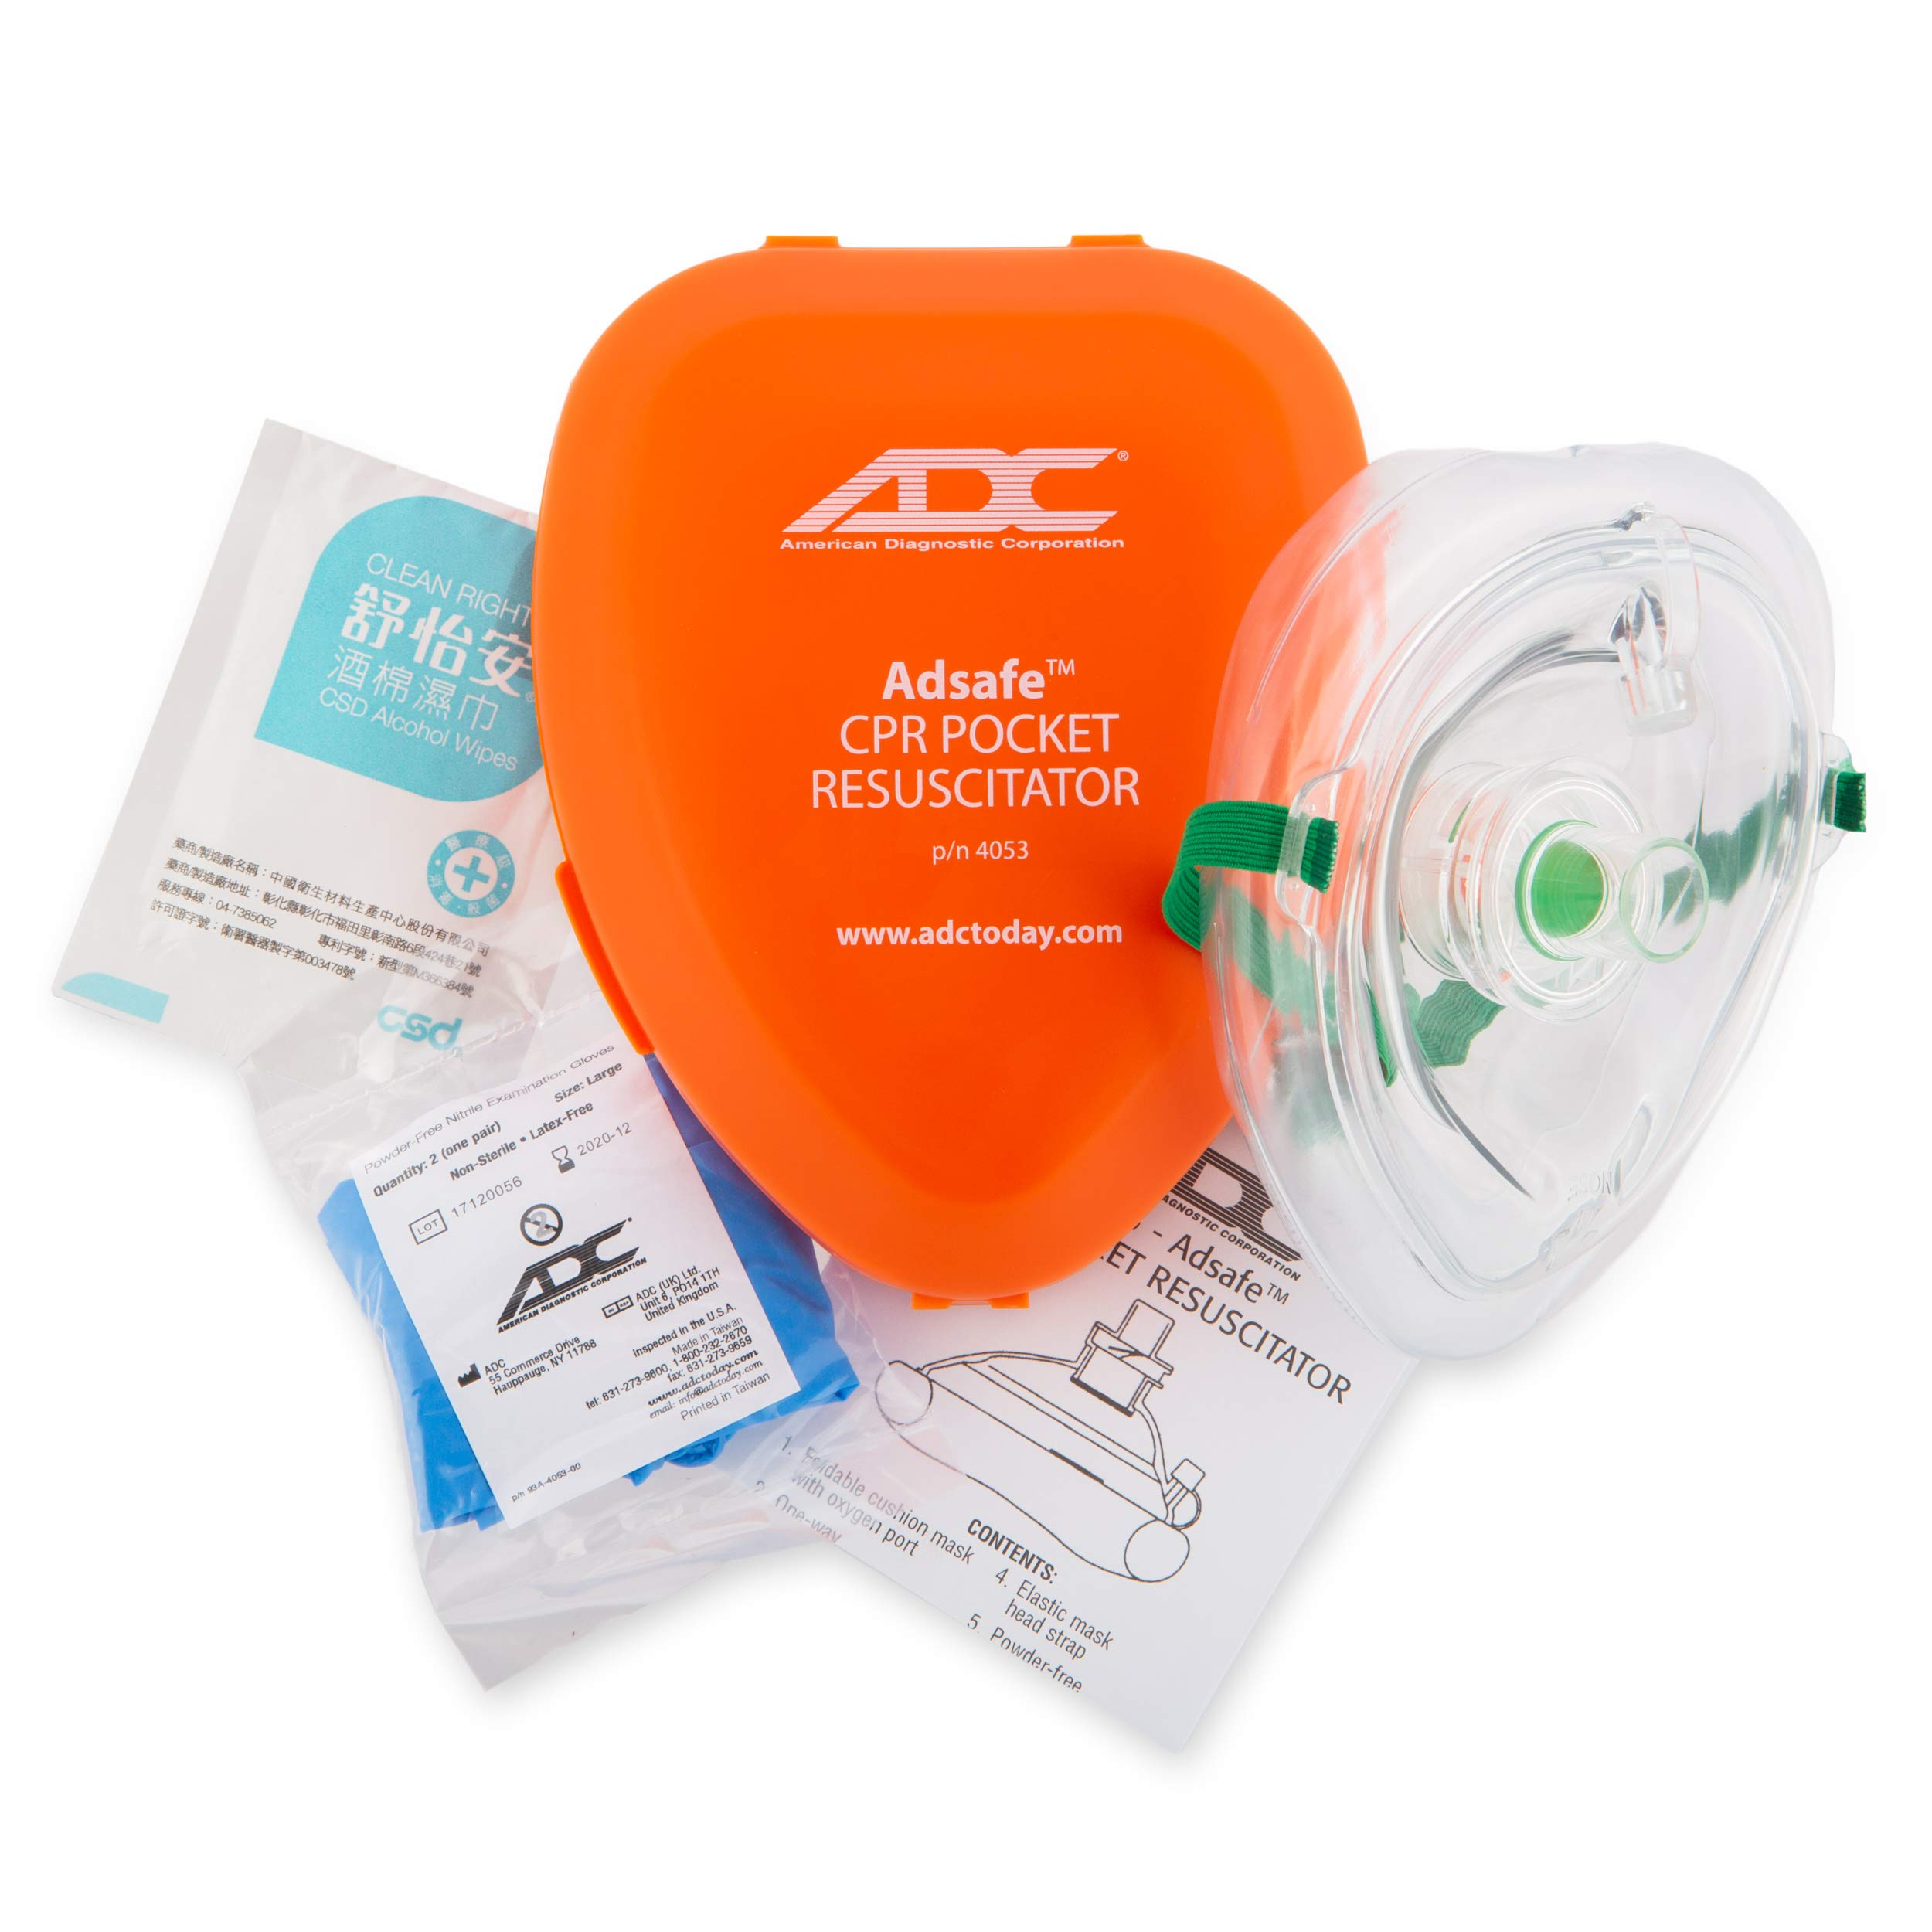 ADC Adsafe CPR Mask Pocket Resuscitator Kit; 3M Filtrete Filter with replaceable valve, disposable non-latex gloves, and alcohol wipe; 1 Kit